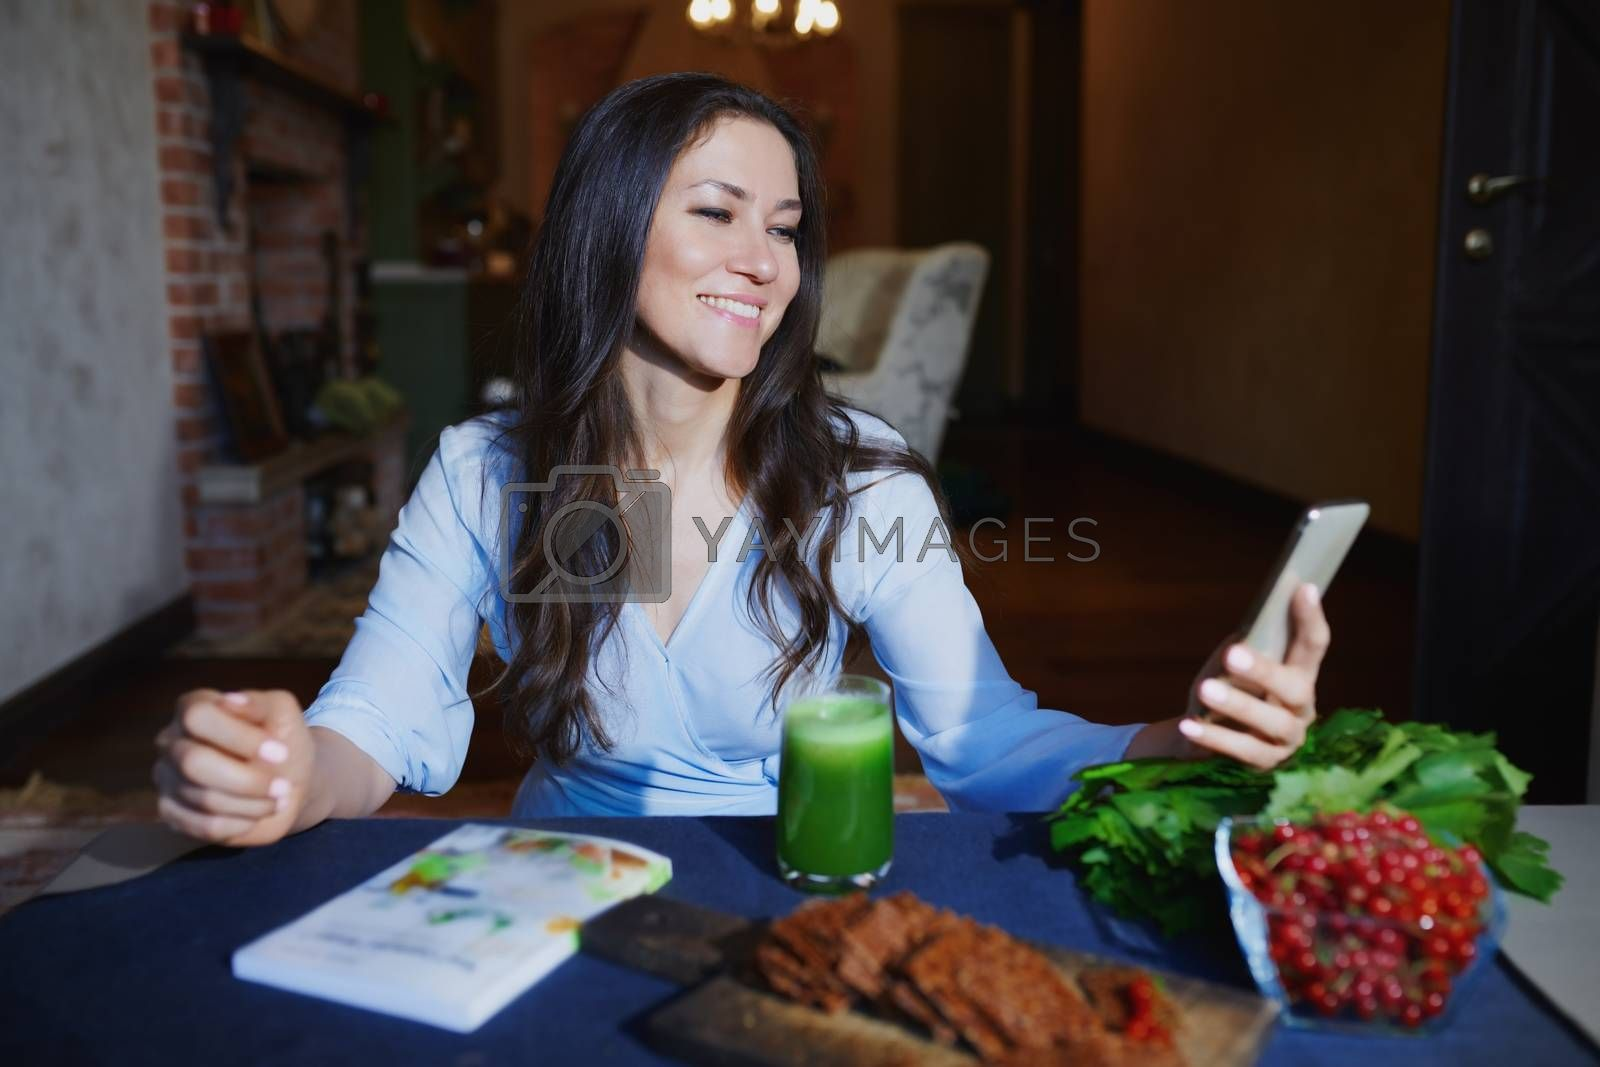 Royalty free image of Woman at the table with healthy food making mobile photo selfie  by Novic